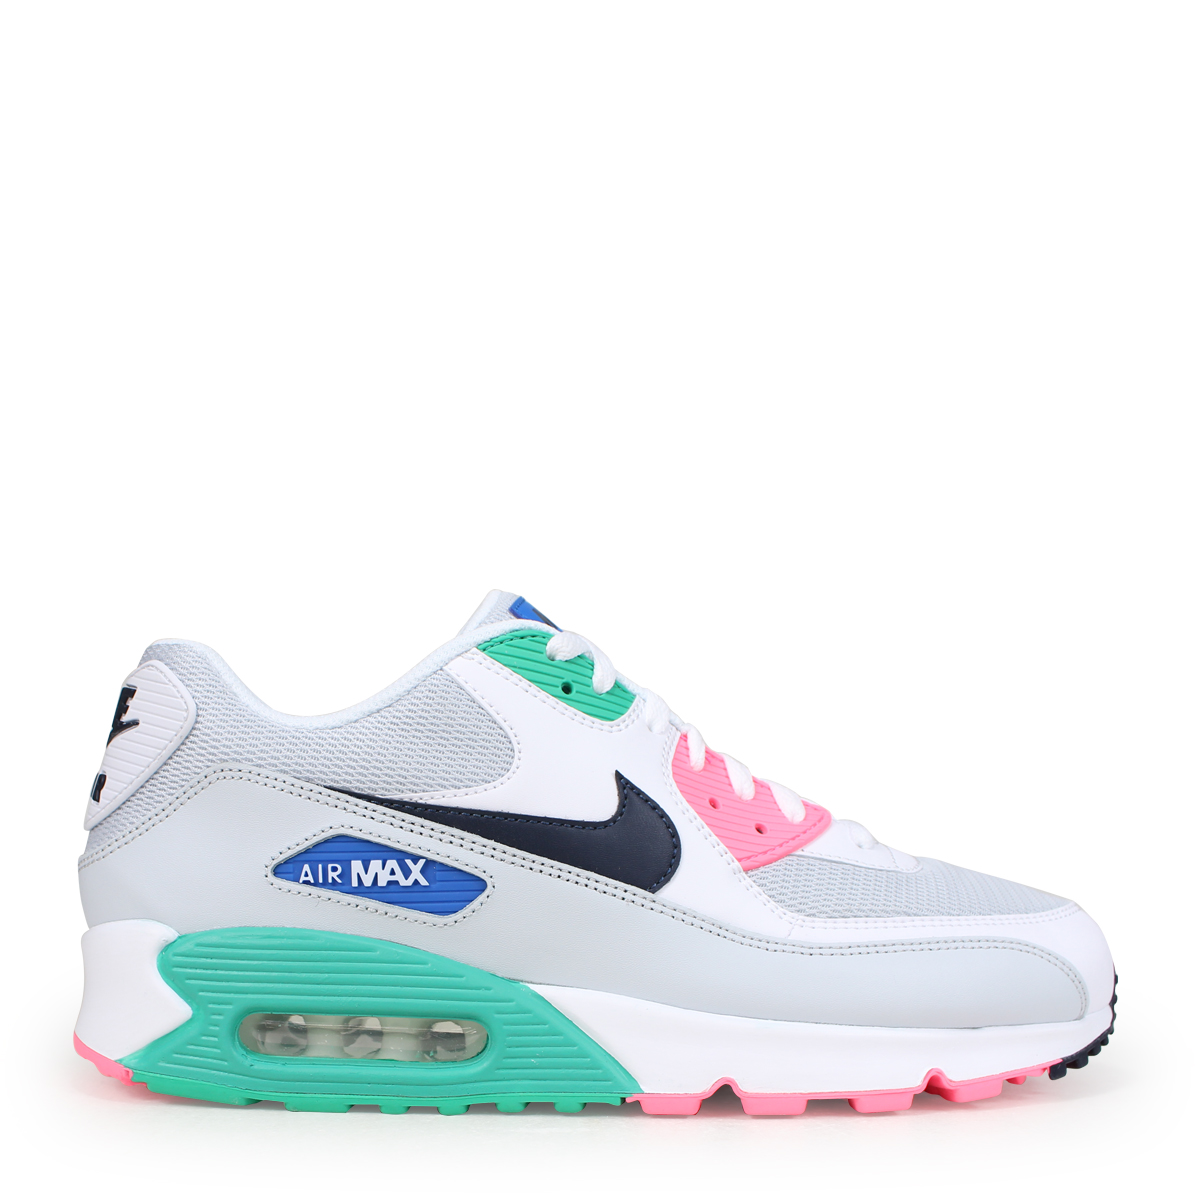 99ba8d11025fd NIKE AIR MAX 90 ESSENTIAL Kie Ney AMAX 90 essential sneakers men AJ1285-100  white  load planned Shinnyu load in reservation product 6 15 containing    186